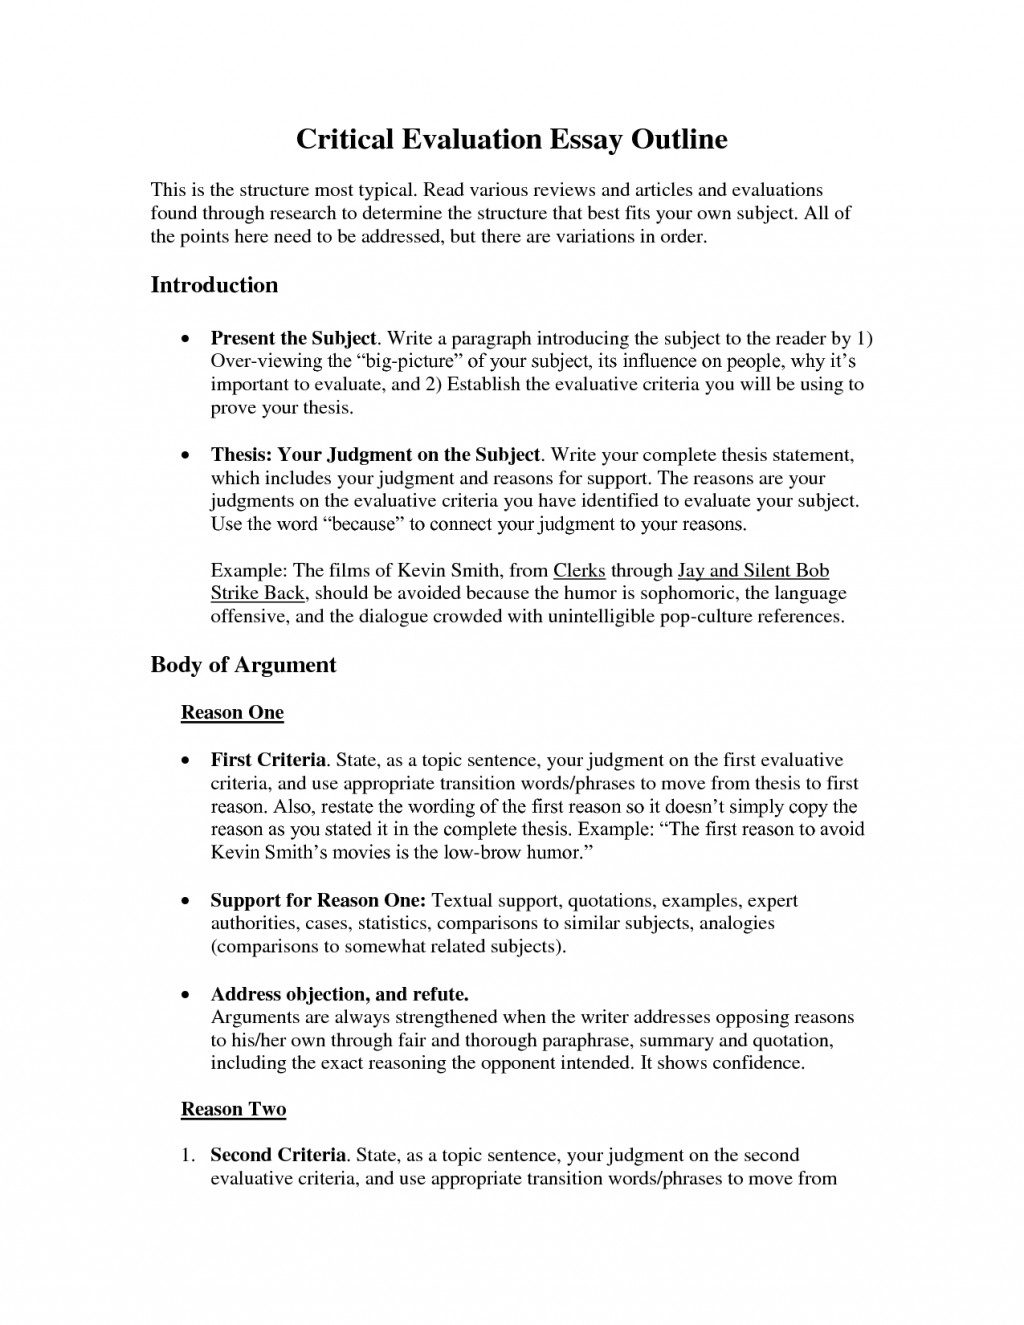 006 Discuss Literature Review Benefits Of Social Media Creative Evaluation Argument Essay Topics Critical Outline 1 Awful Questions With Criteria Large